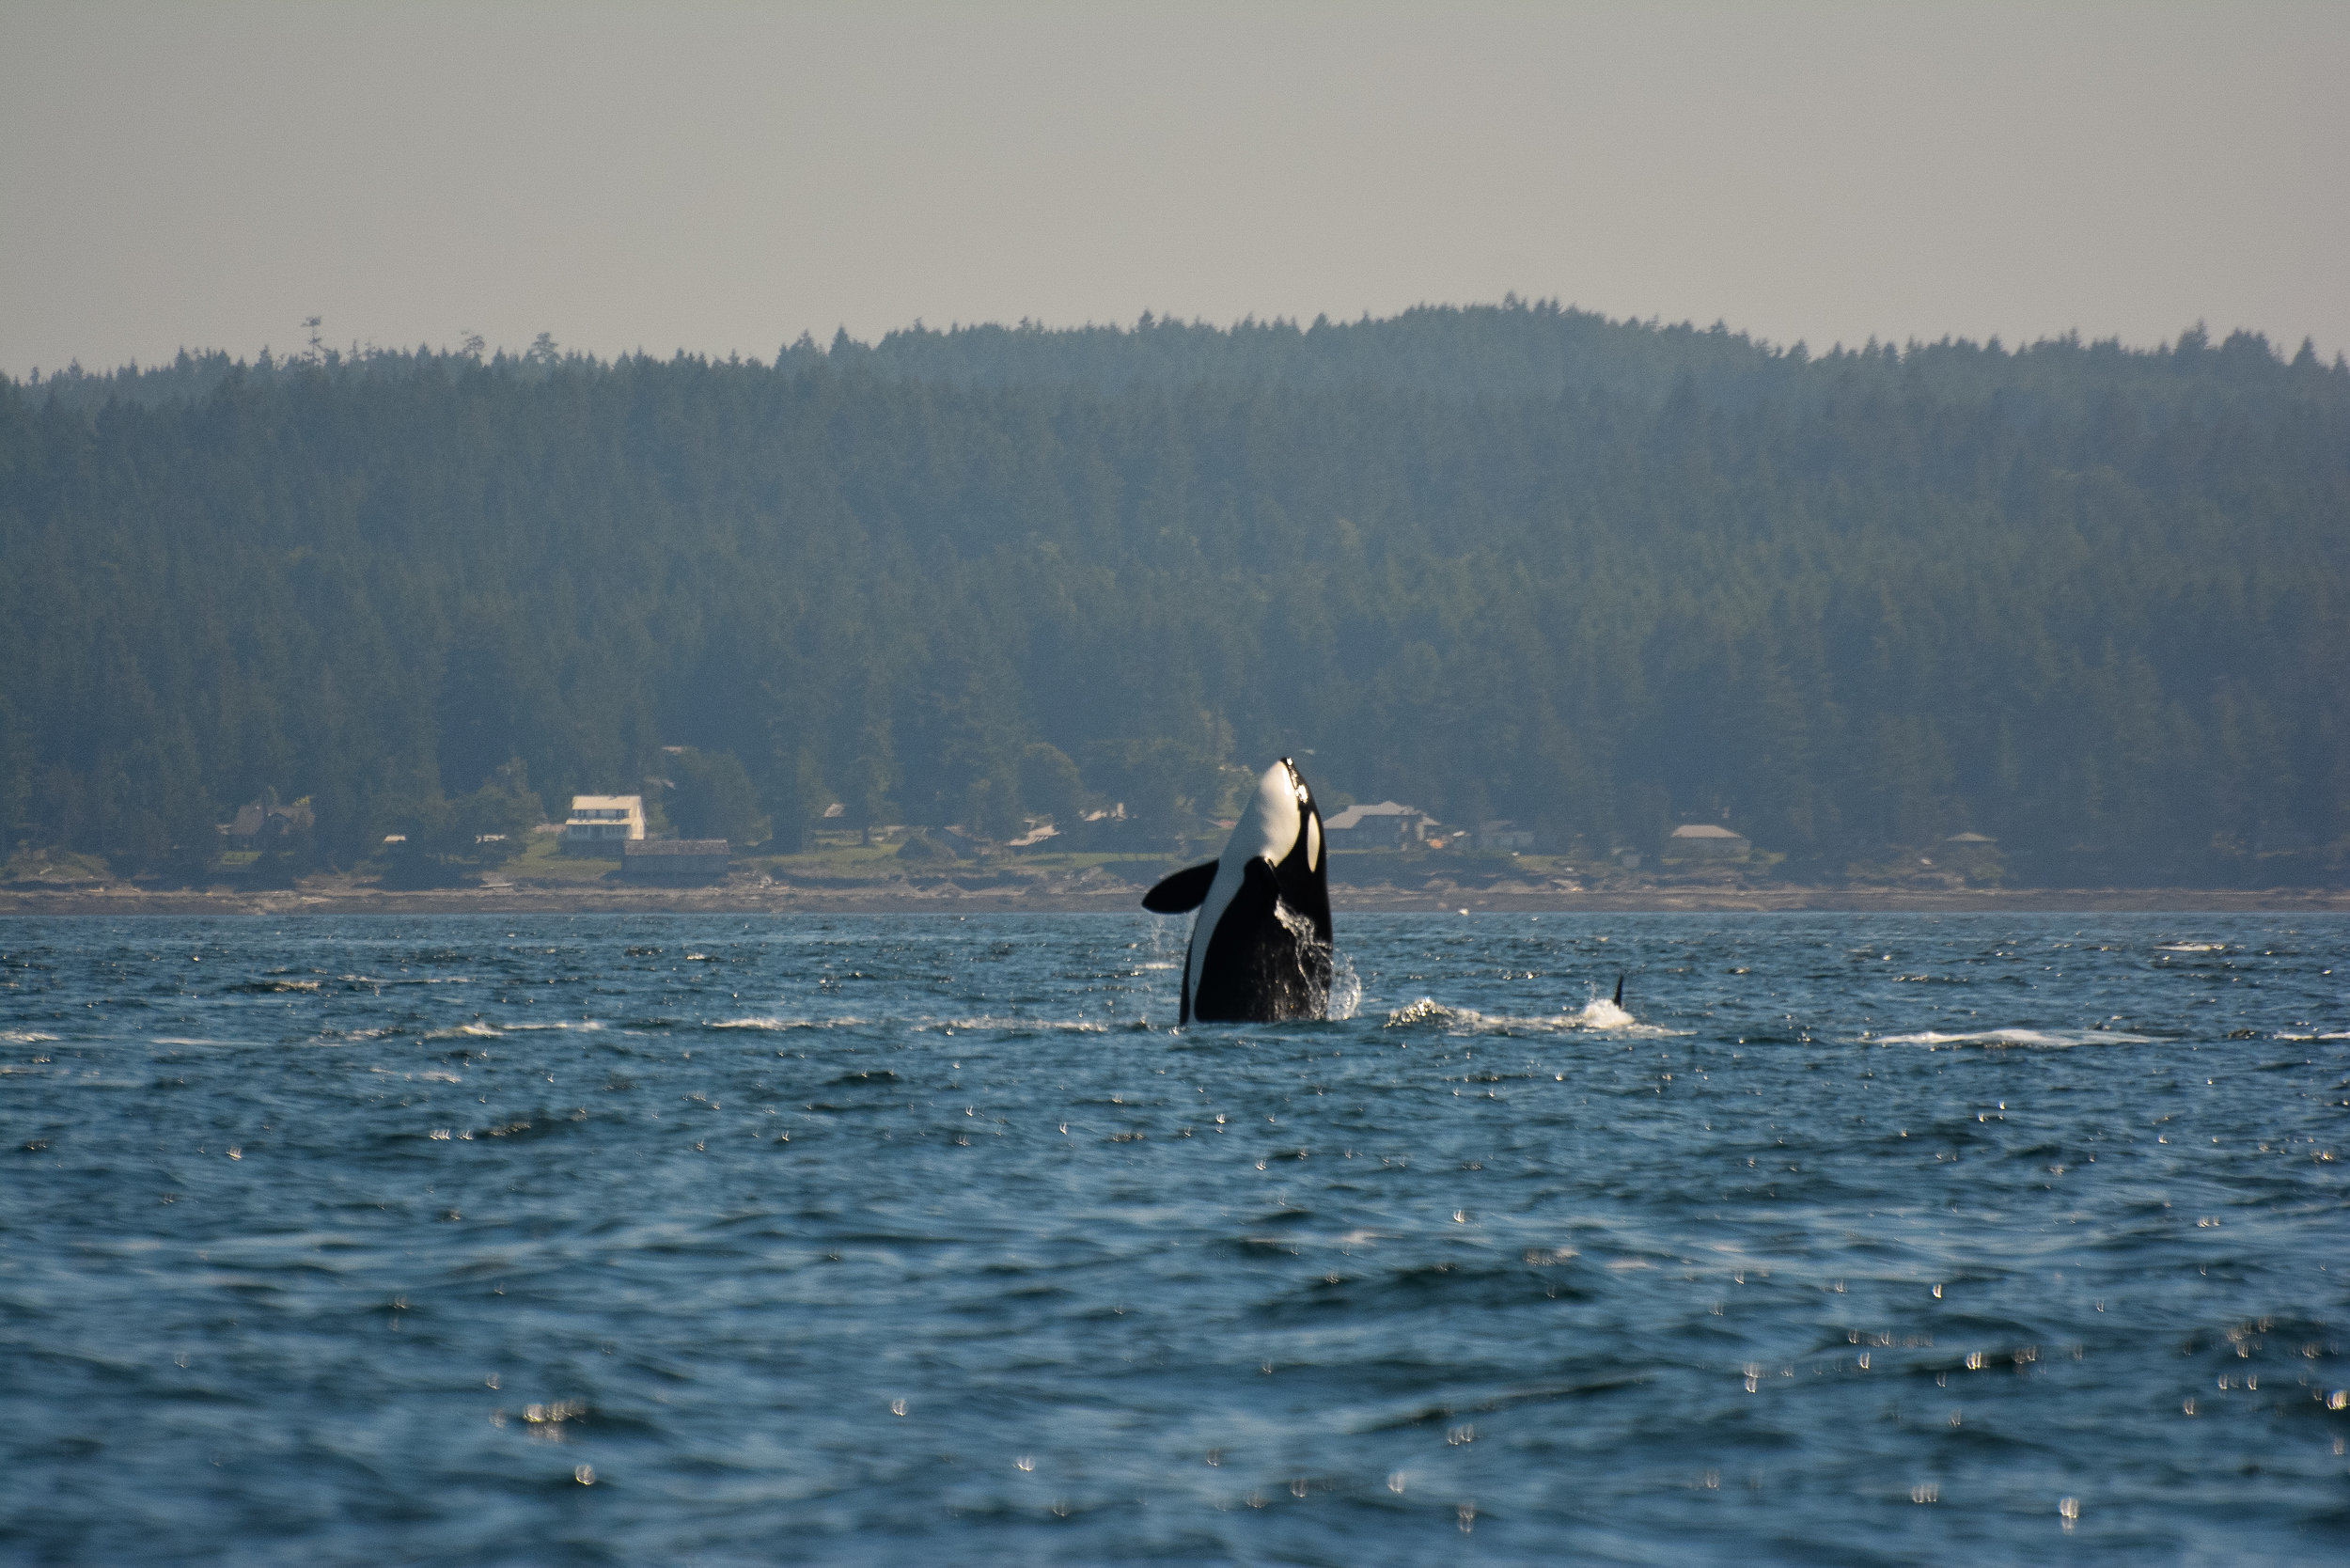 Killer whale checking out its surroundings - a behaviour known as spy hopping.